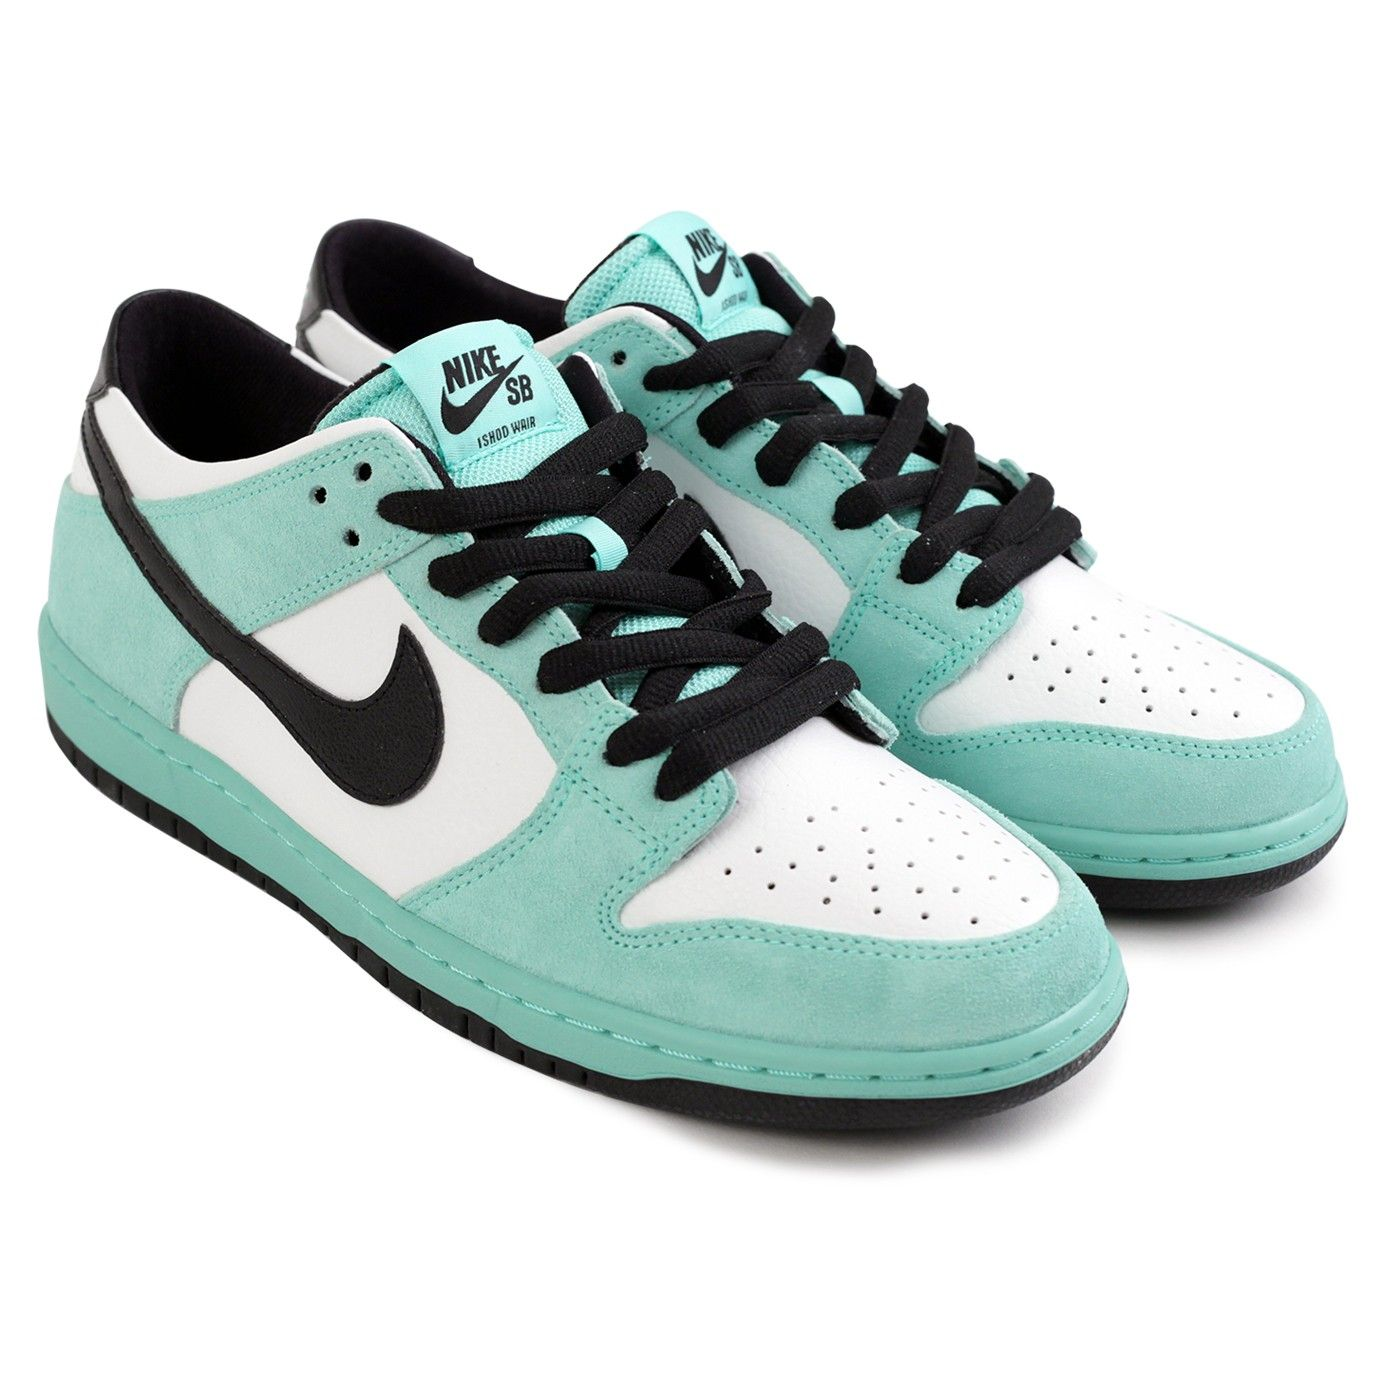 low priced 62dc6 93ad9 Dunk Low Pro Ishod Wair Shoes in Green Glow / Black - Summit ...